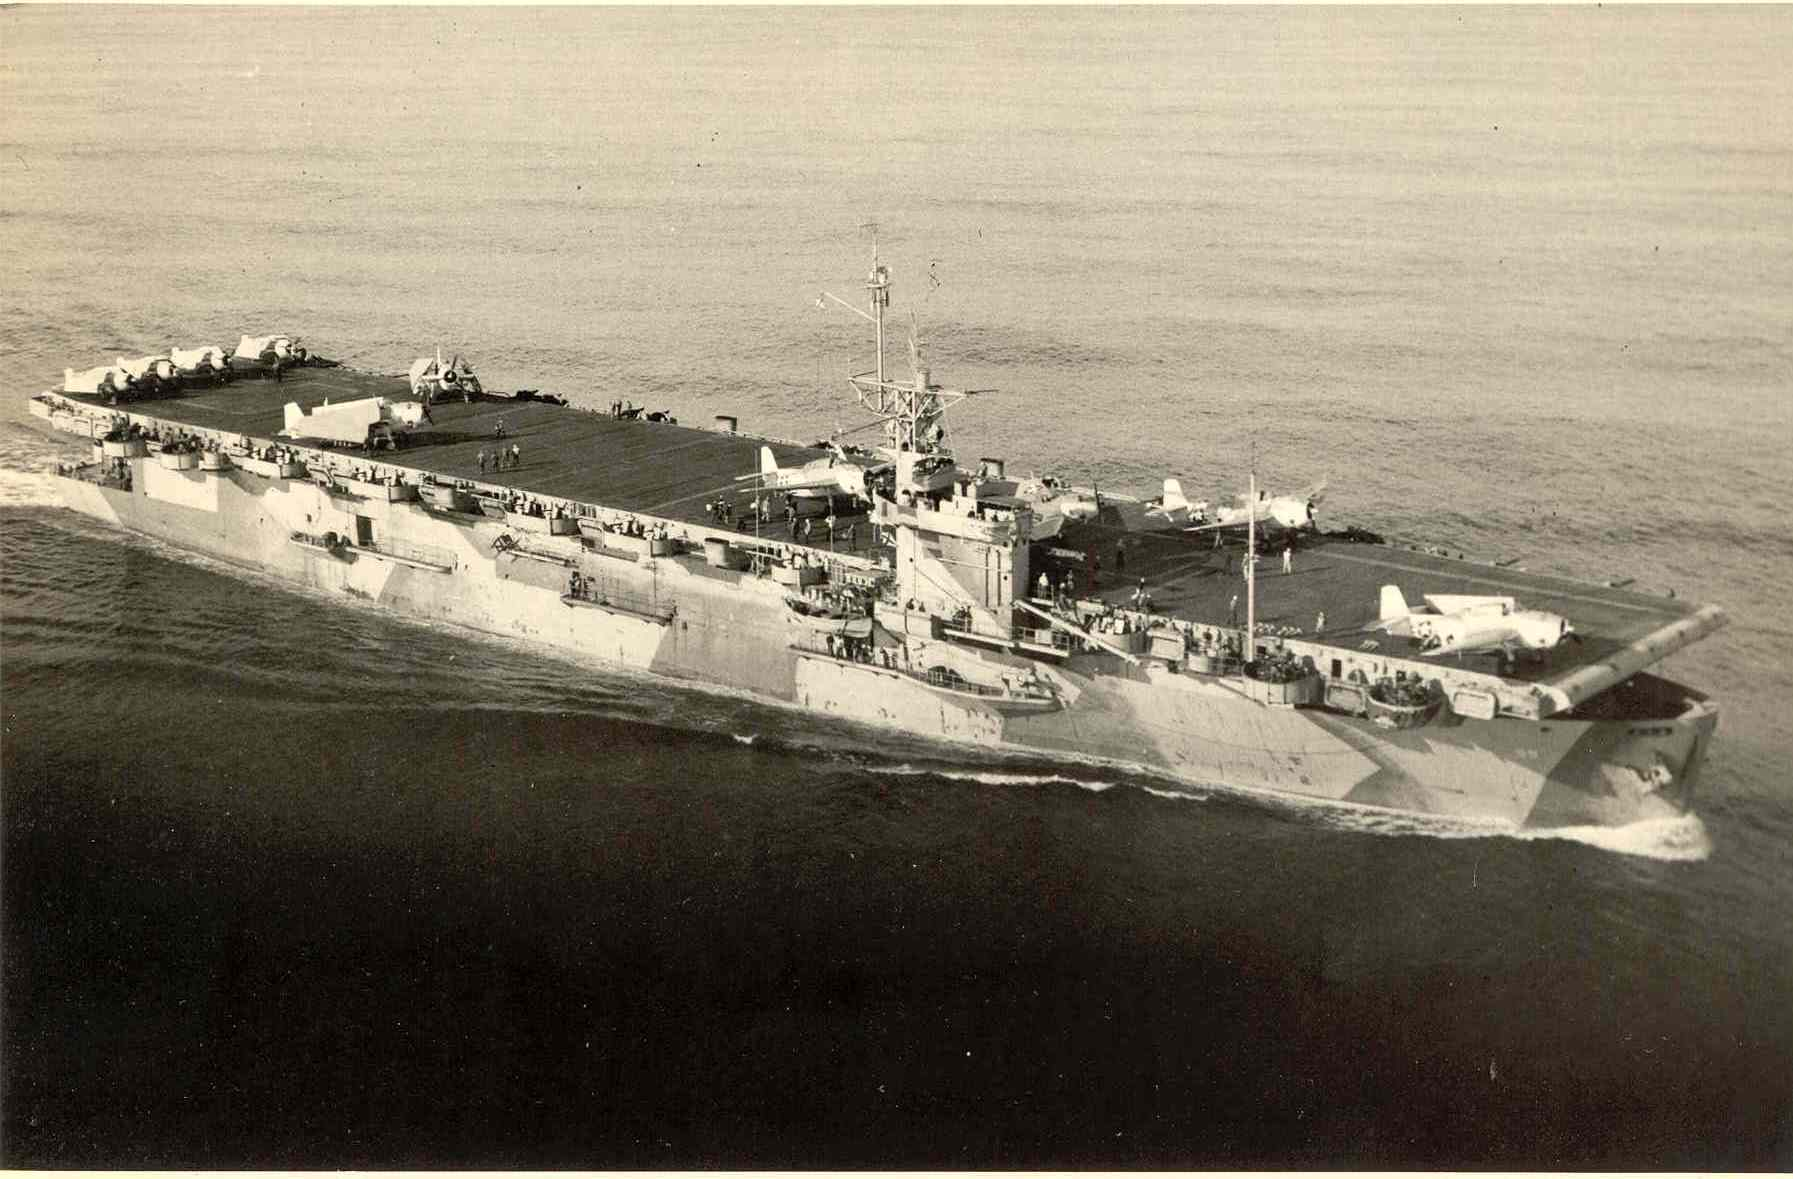 U.S.S. Mission Bay. Edward Tishman served aboard this vessel in the Pacific arena during World War II.